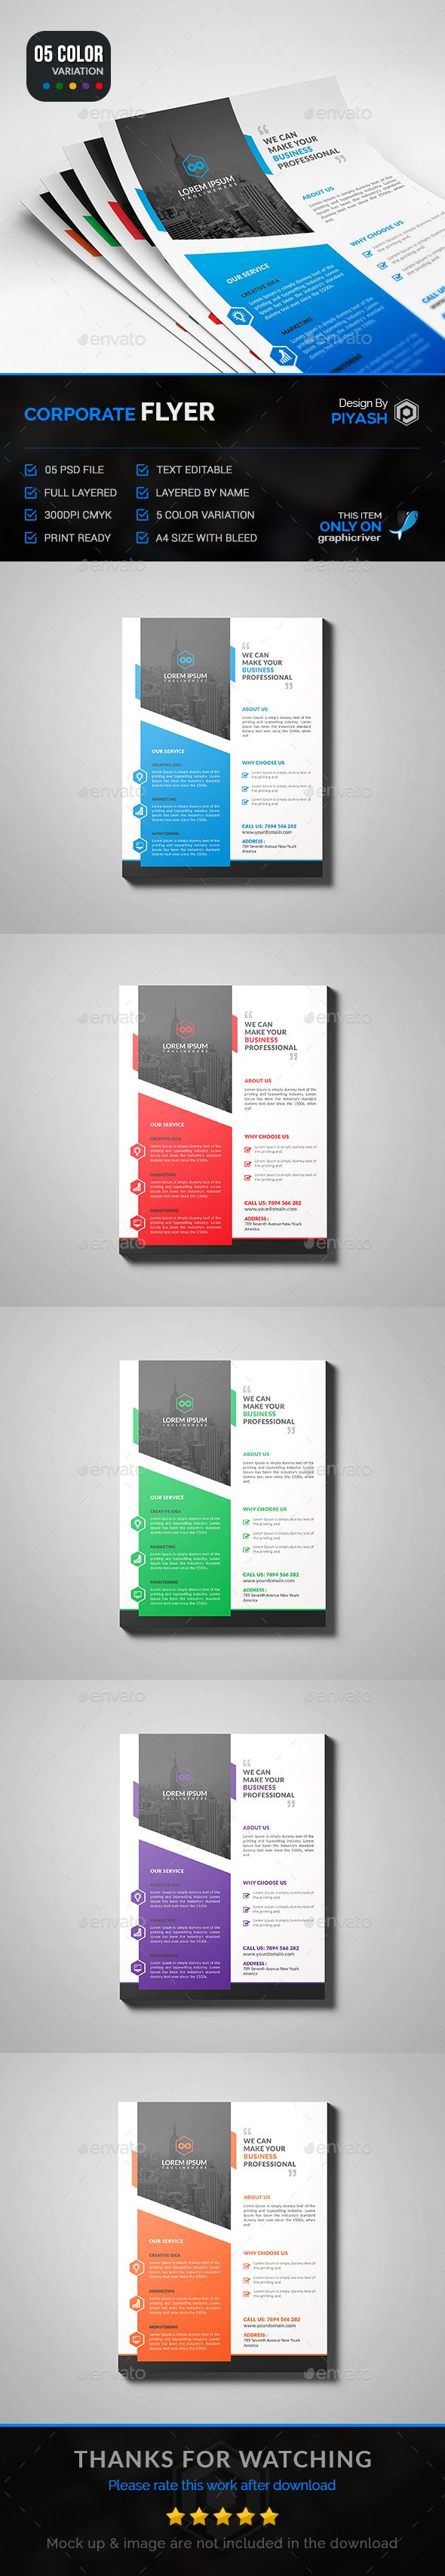 Corporate Flyer Template PSD. Download here: http://graphicriver.net/item/corporate-flyer/15009753?ref=ksioks